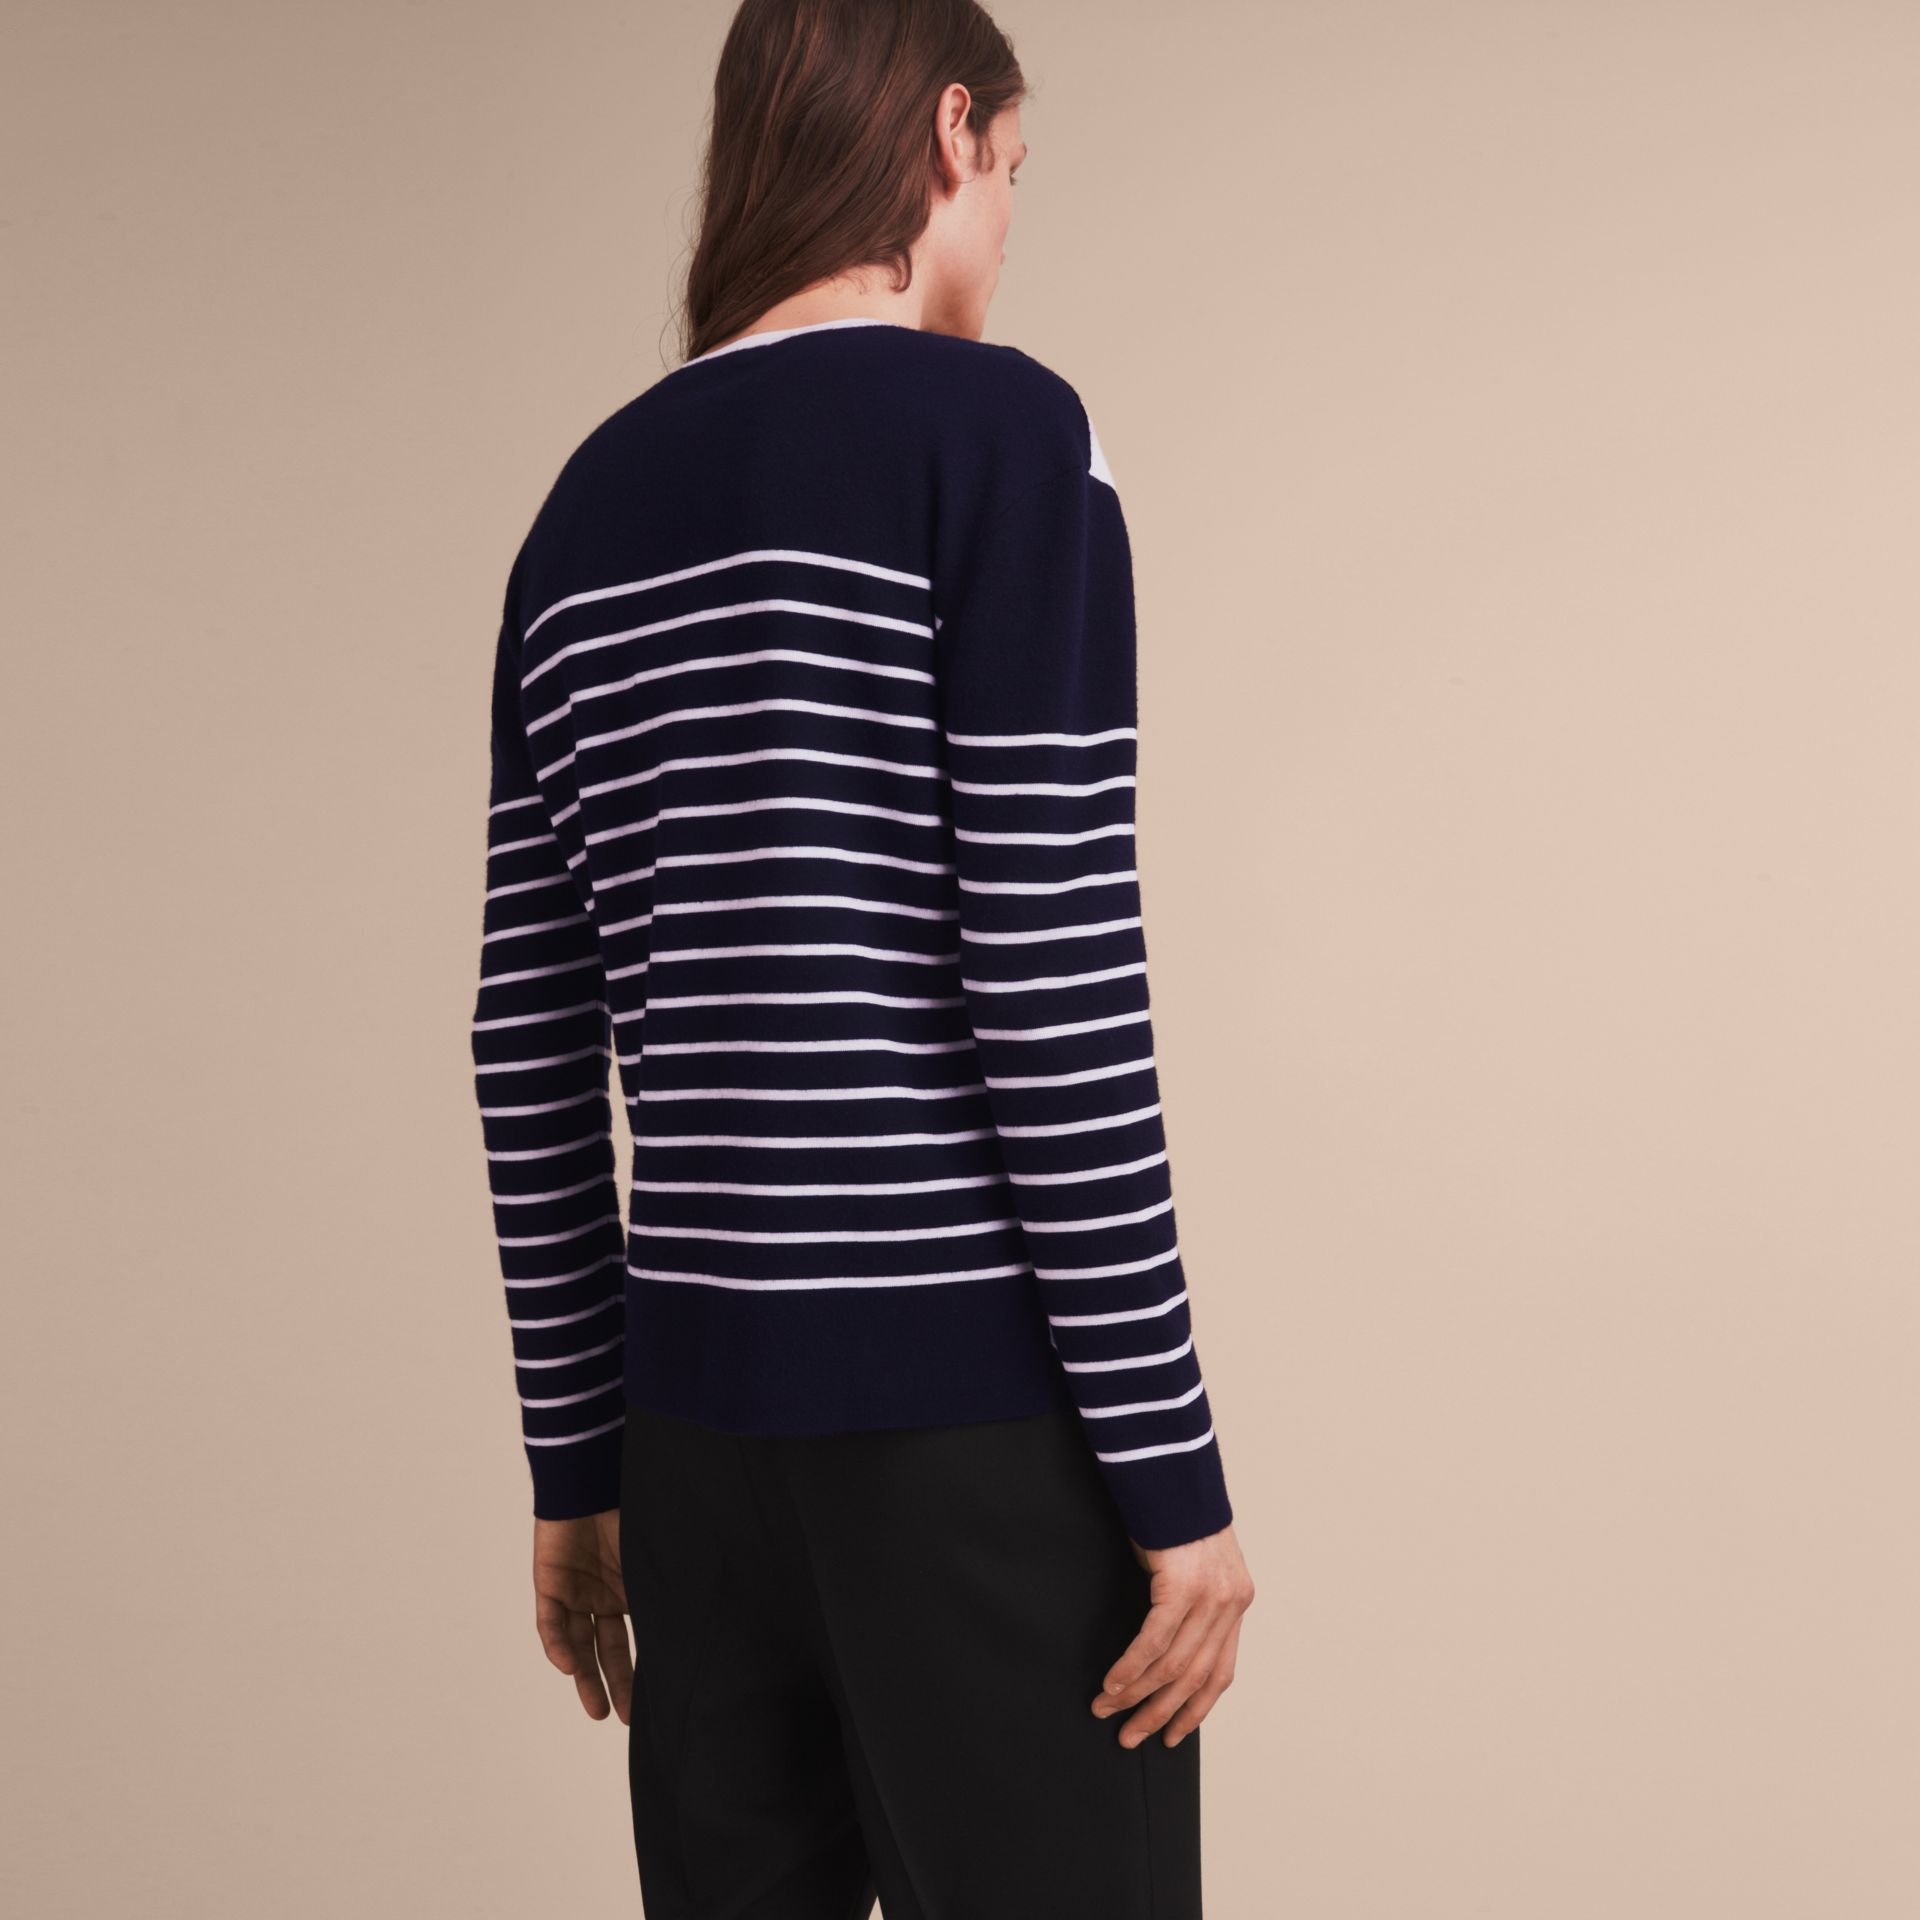 Contrast Stripe Cashmere Blend Sweater in Navy - Men | Burberry - gallery image 3